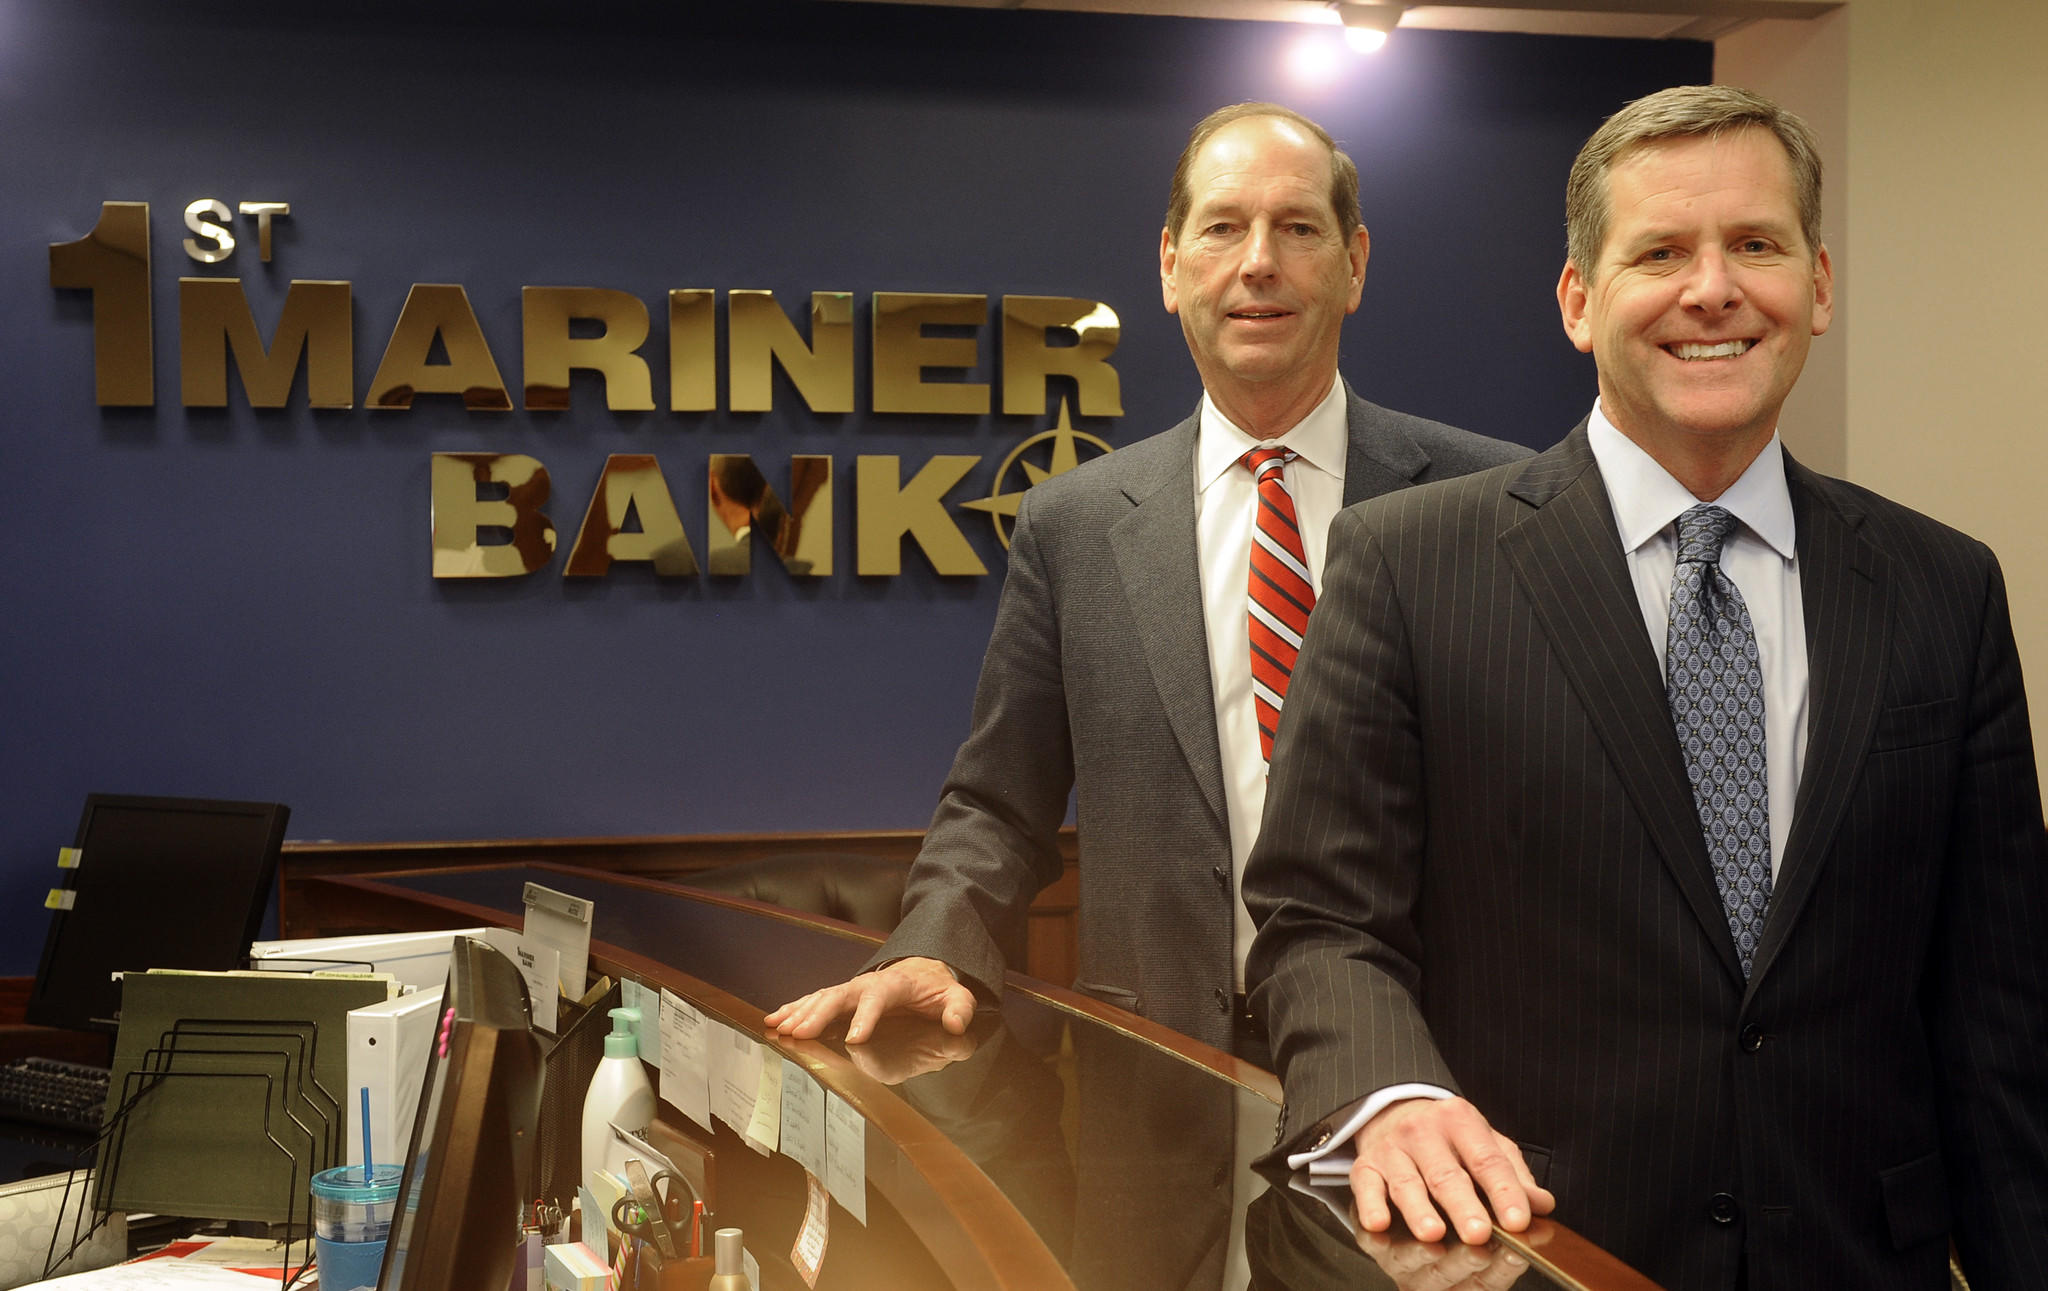 Baltimore, MD--Feb. 10, 2014--First Mariner Bank's parent is selling it to a group of investors. Jack Steil, left, is Chairman and CEO of the recapitalized bank; Robert Kunisch, right, is President and COO of the recapitalized First Mariner Bank. staff photo/Barbara Haddock Taylor